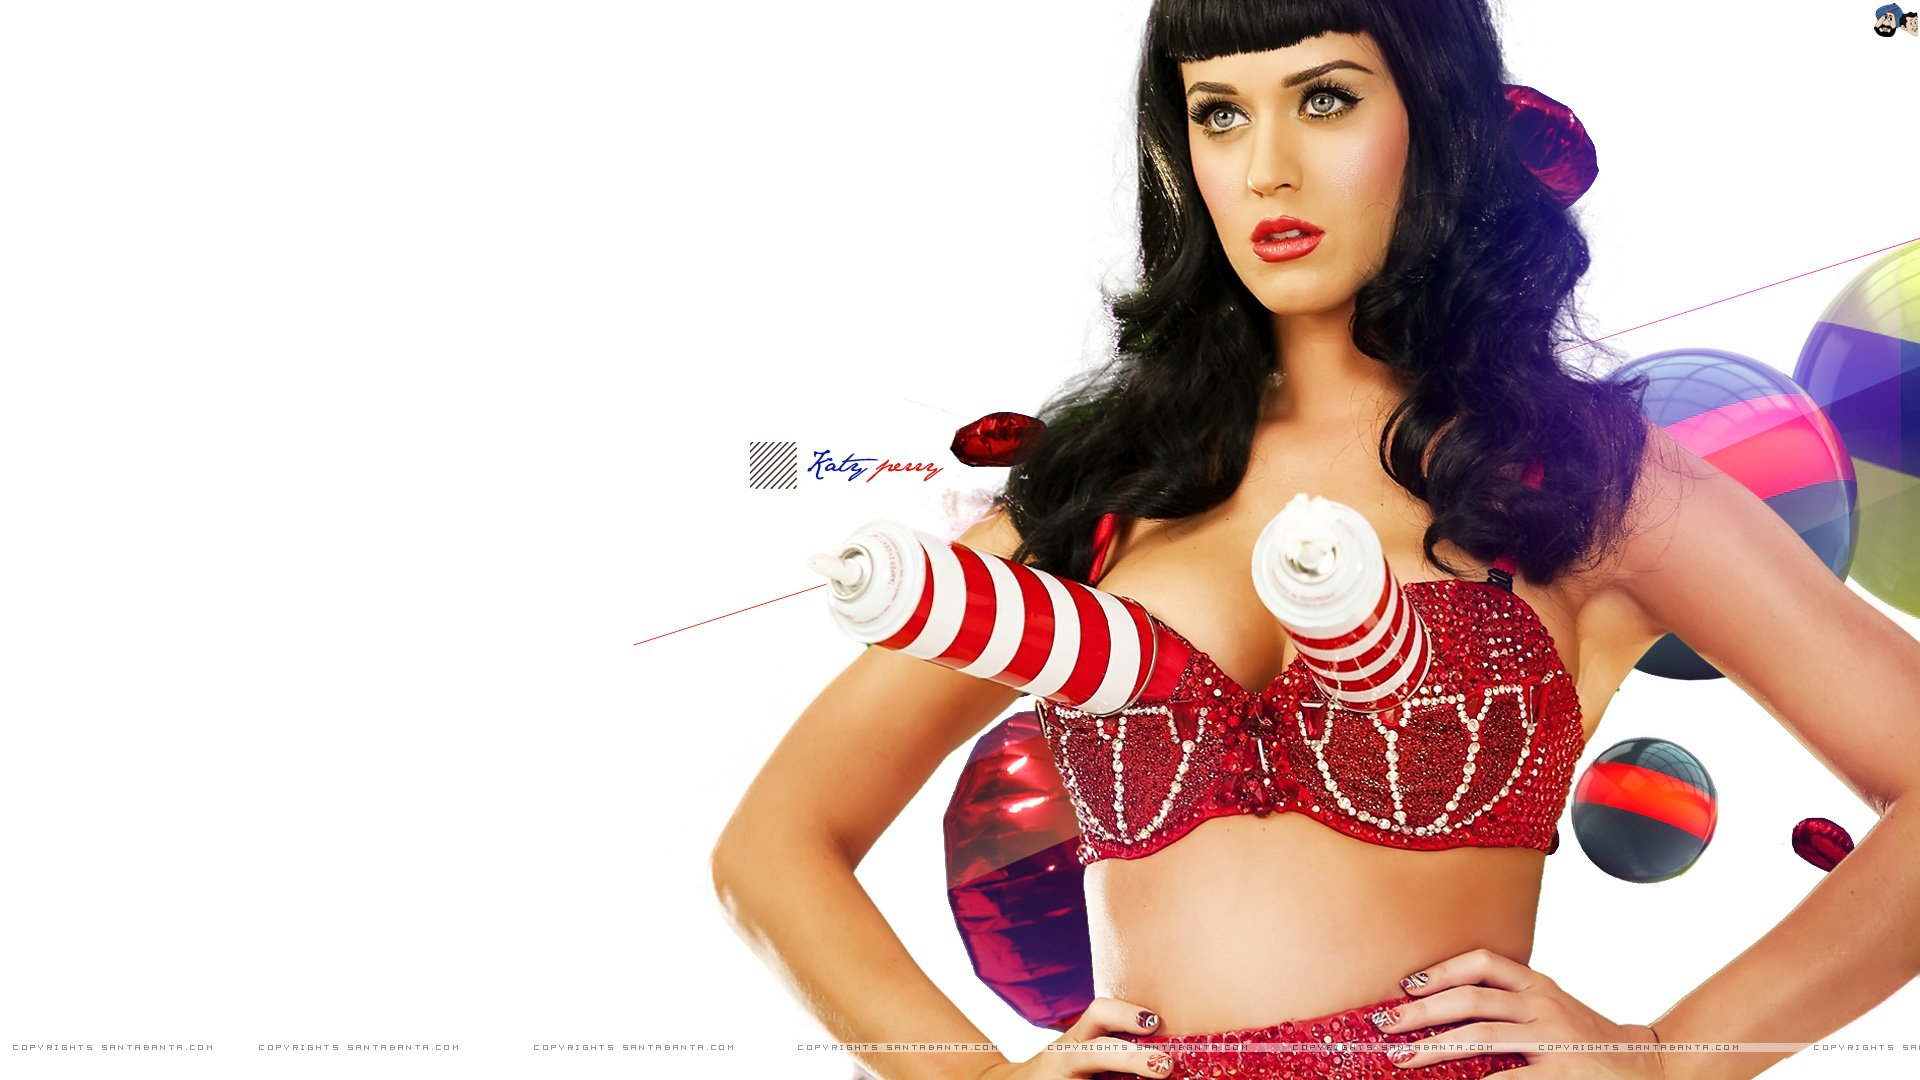 Free Download Live Wallpaper Girl For Android Download Katy Perry California Gurls Wallpaper Gallery